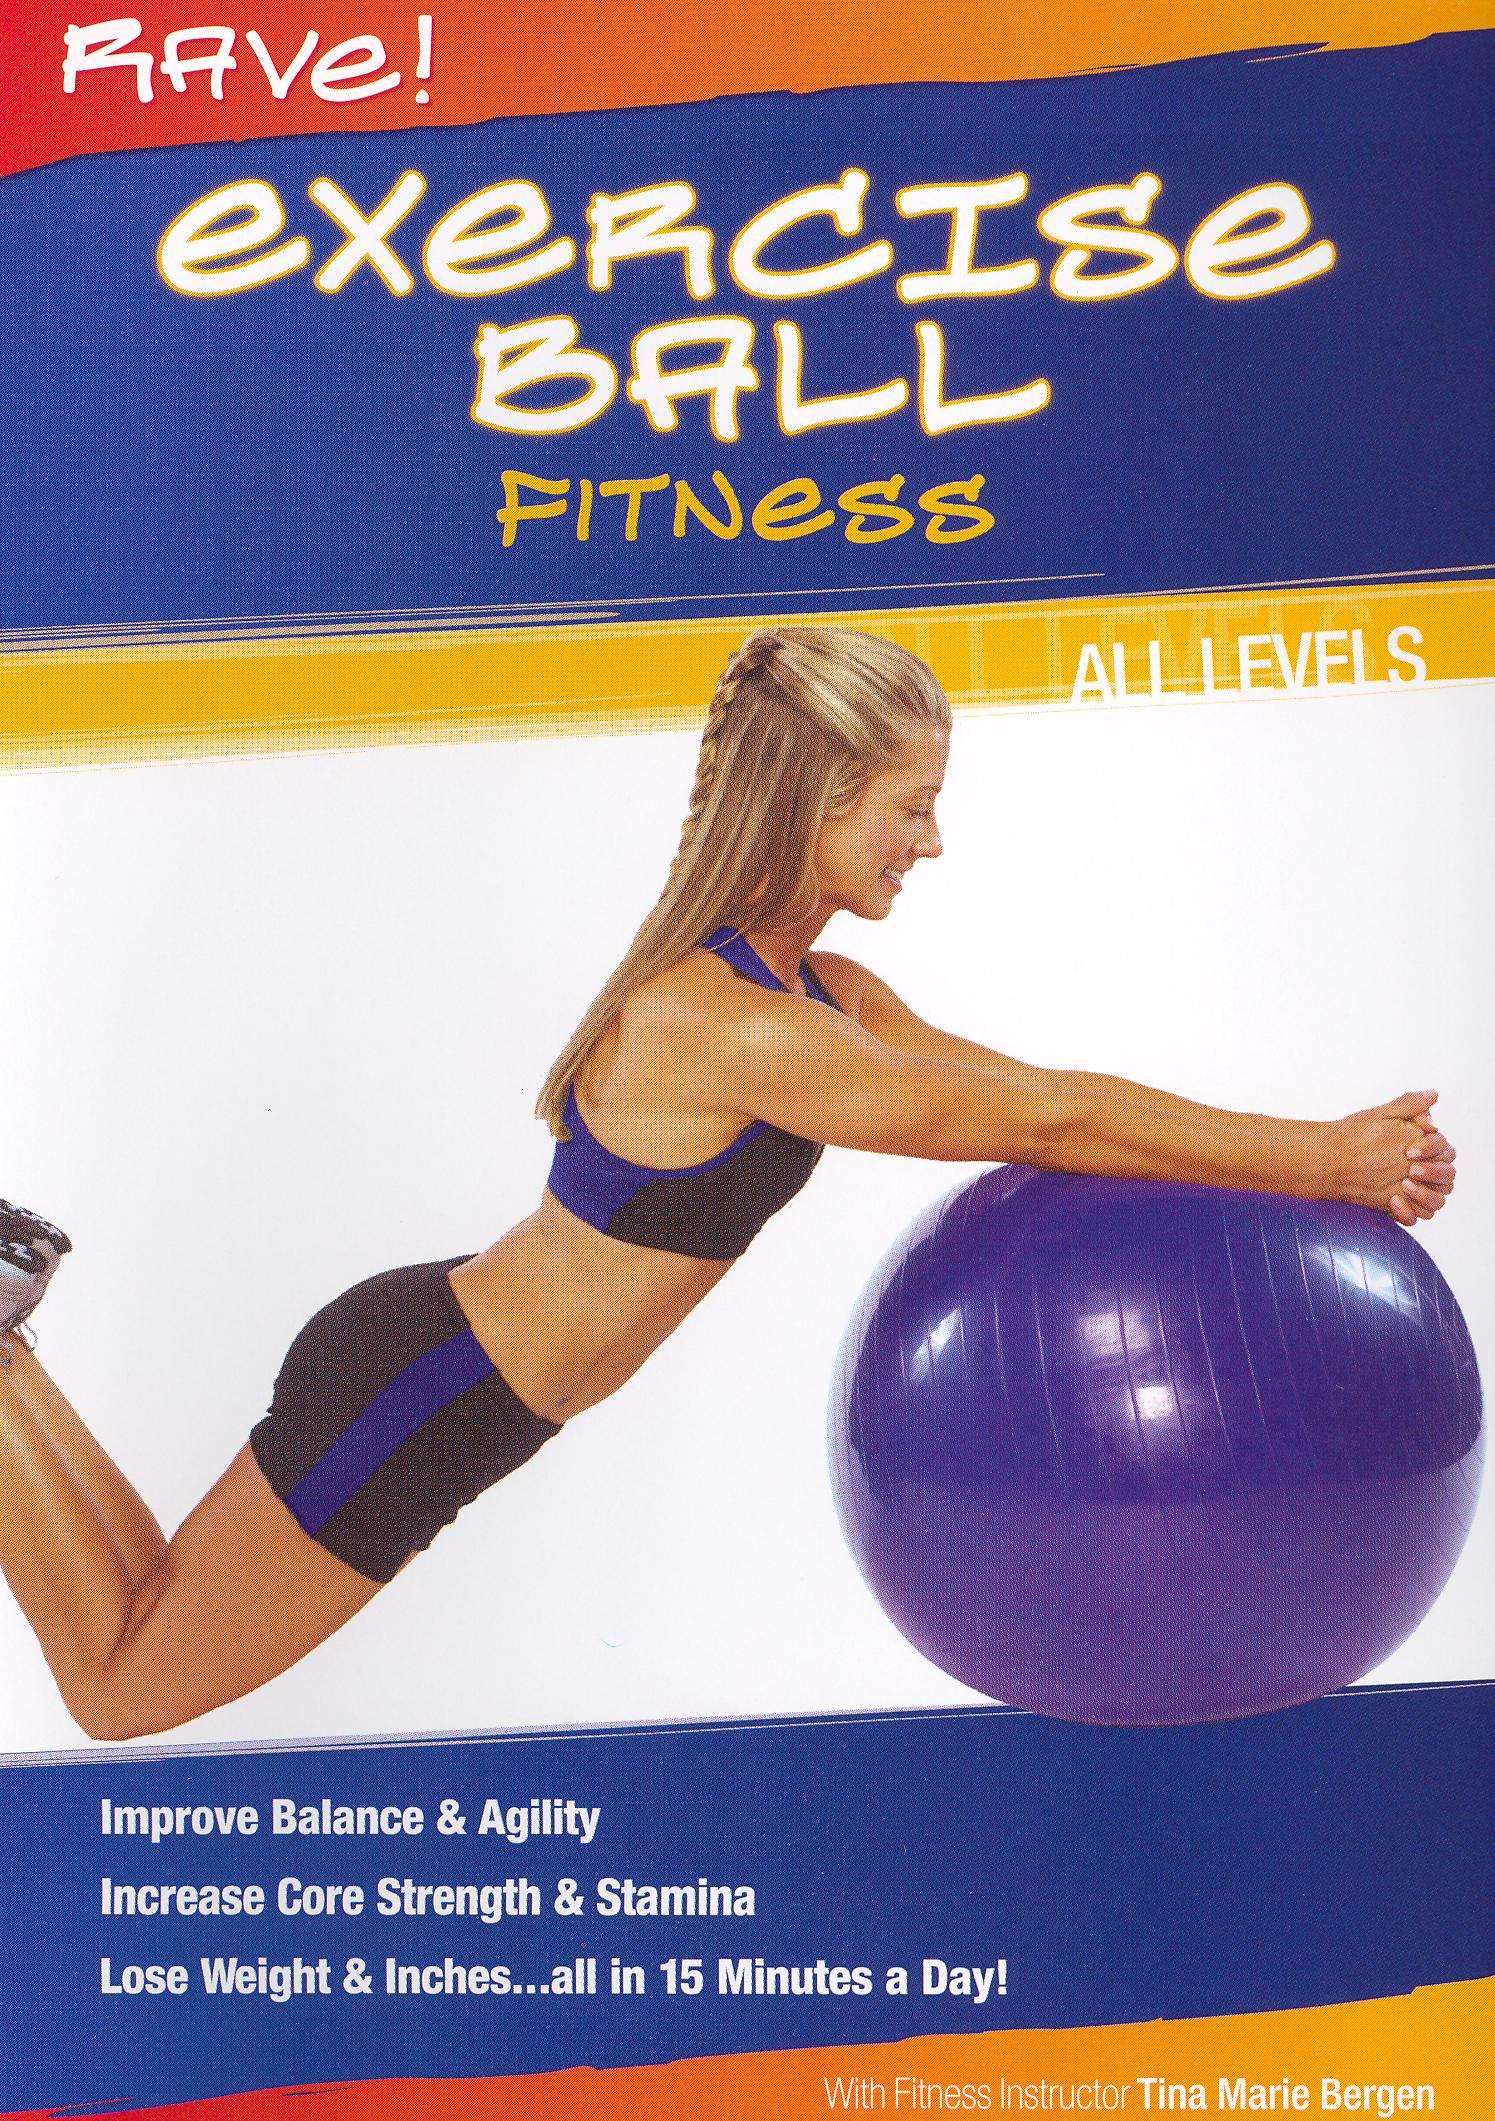 Rave! Exercise Ball Fitness